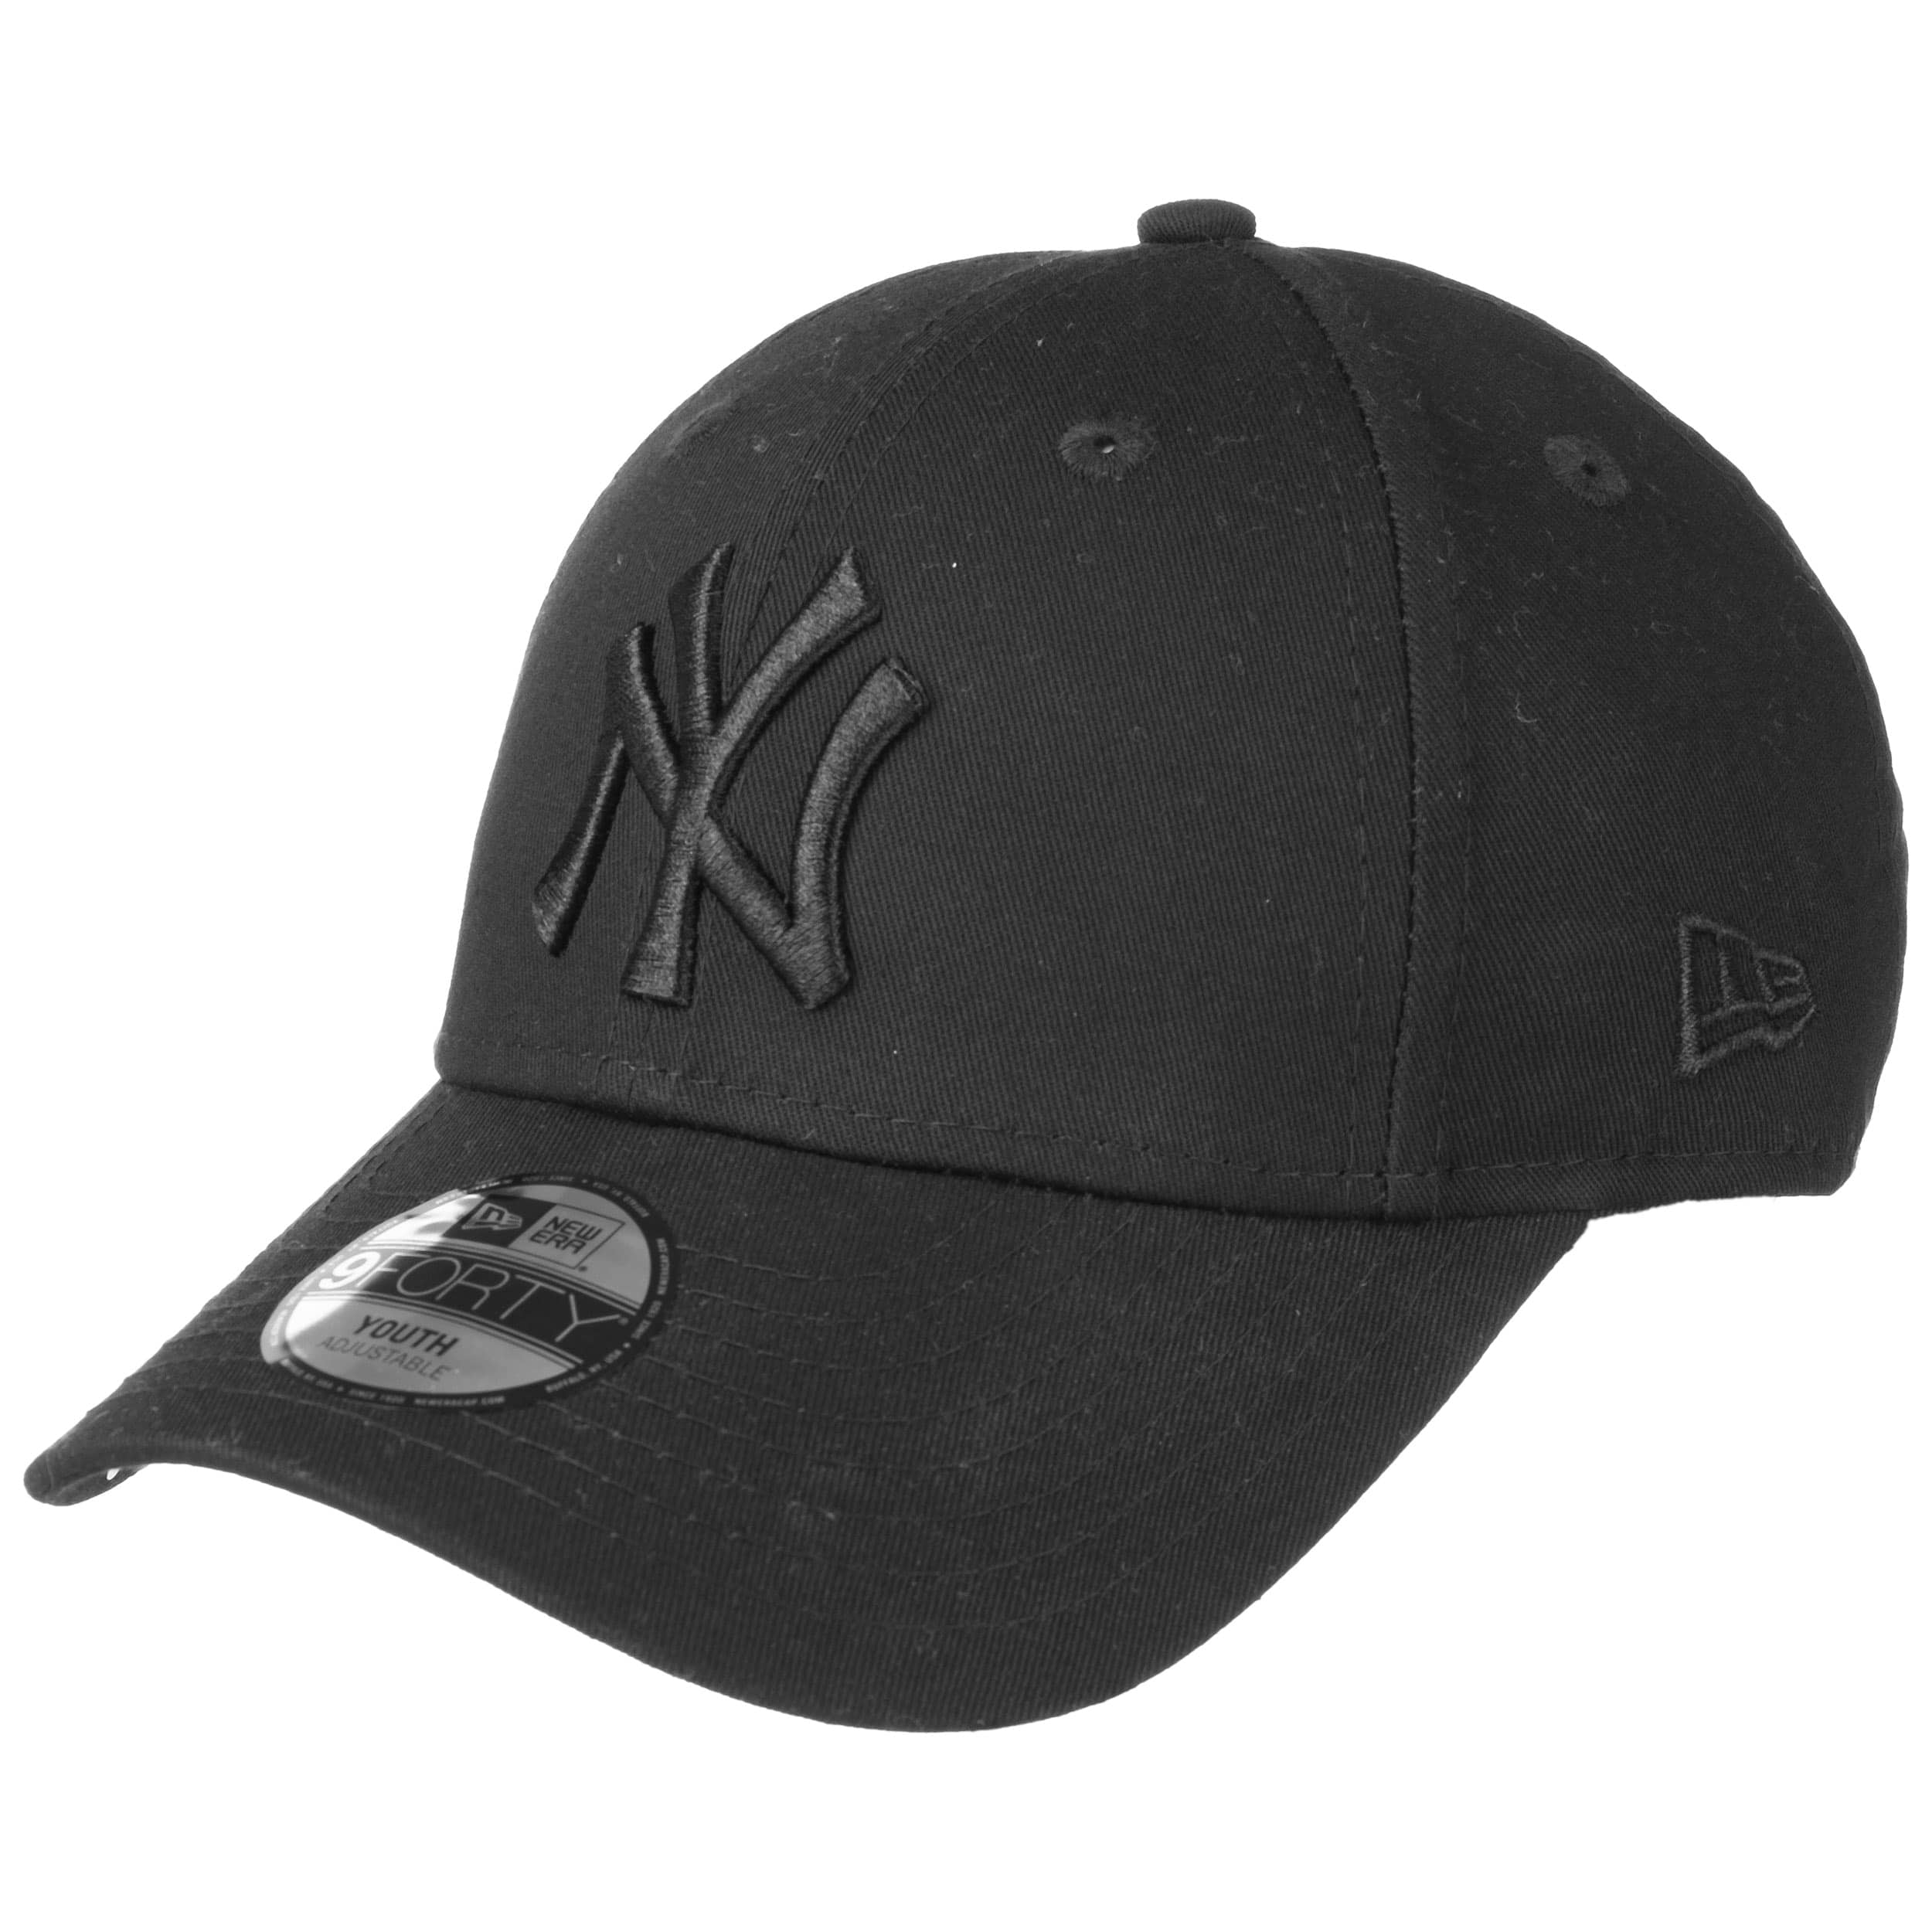 3bf3d23d2 ... get 9forty junior ny yankees cap by new era 6 4a4f7 53052